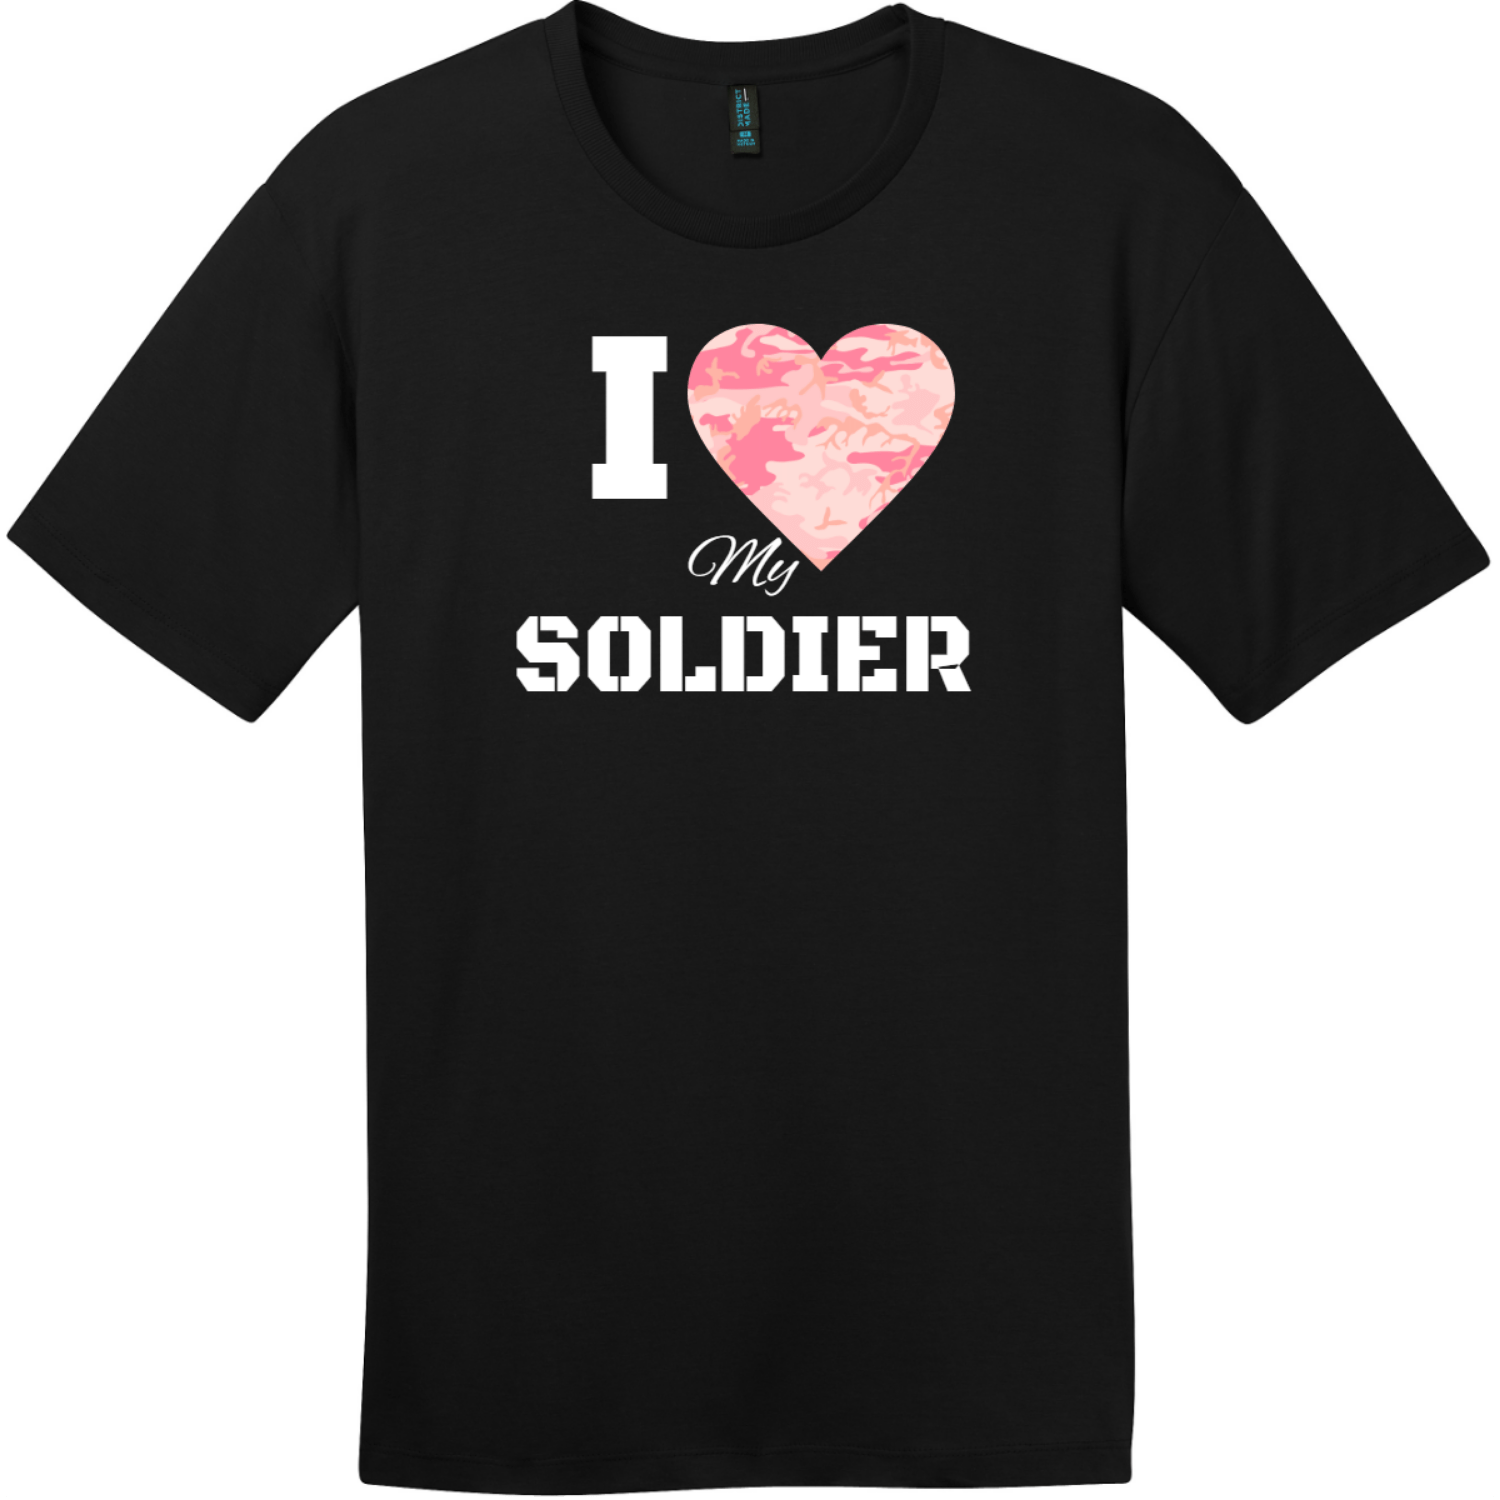 I Love My Soldier Pink Camo Heart T-Shirt Jet Black District Perfect Weight Tee DT104